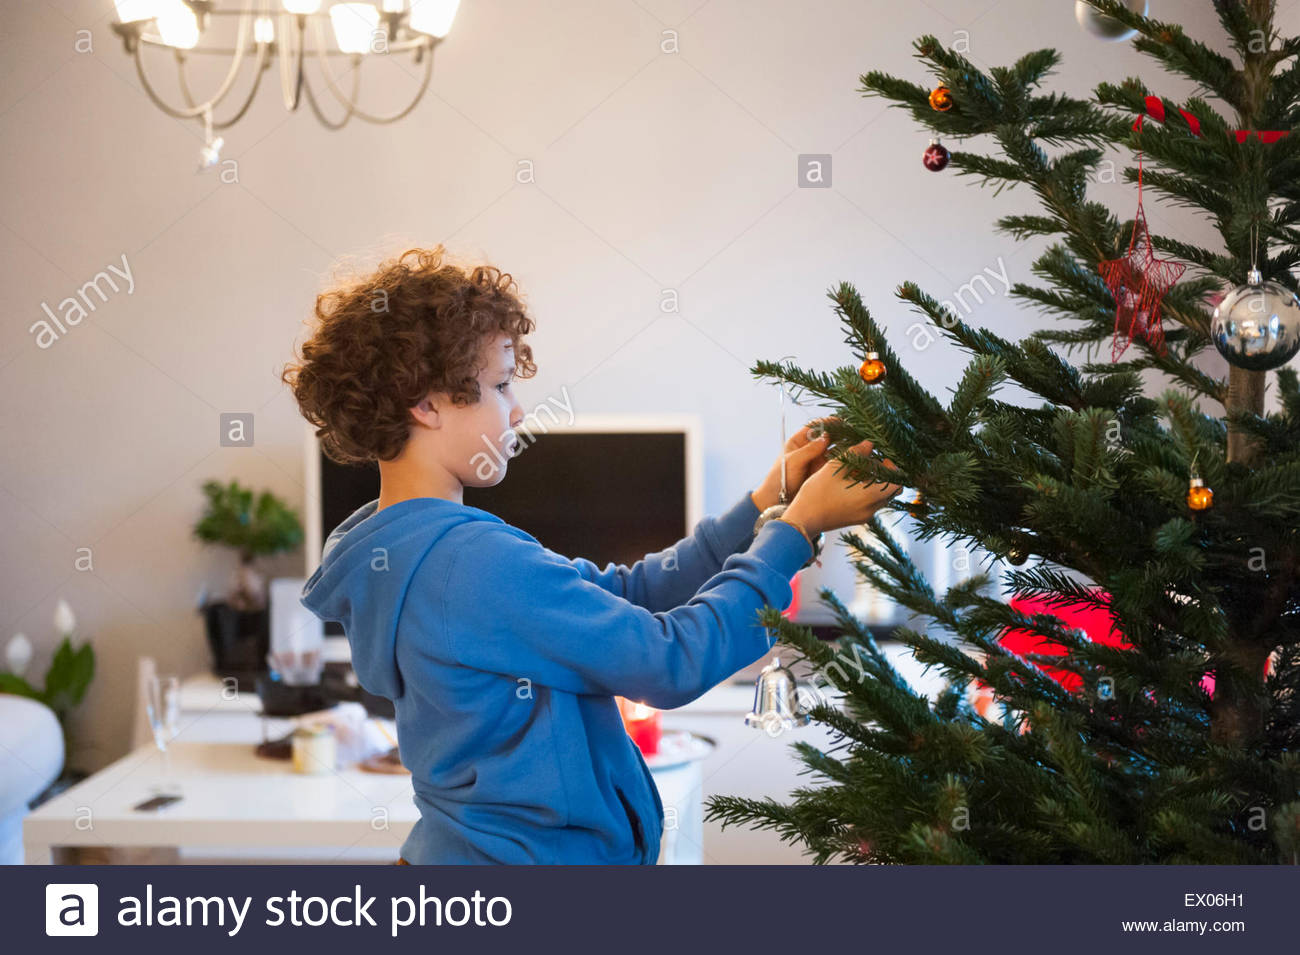 Boy hanging on Christmas Tree decorations Photo Stock